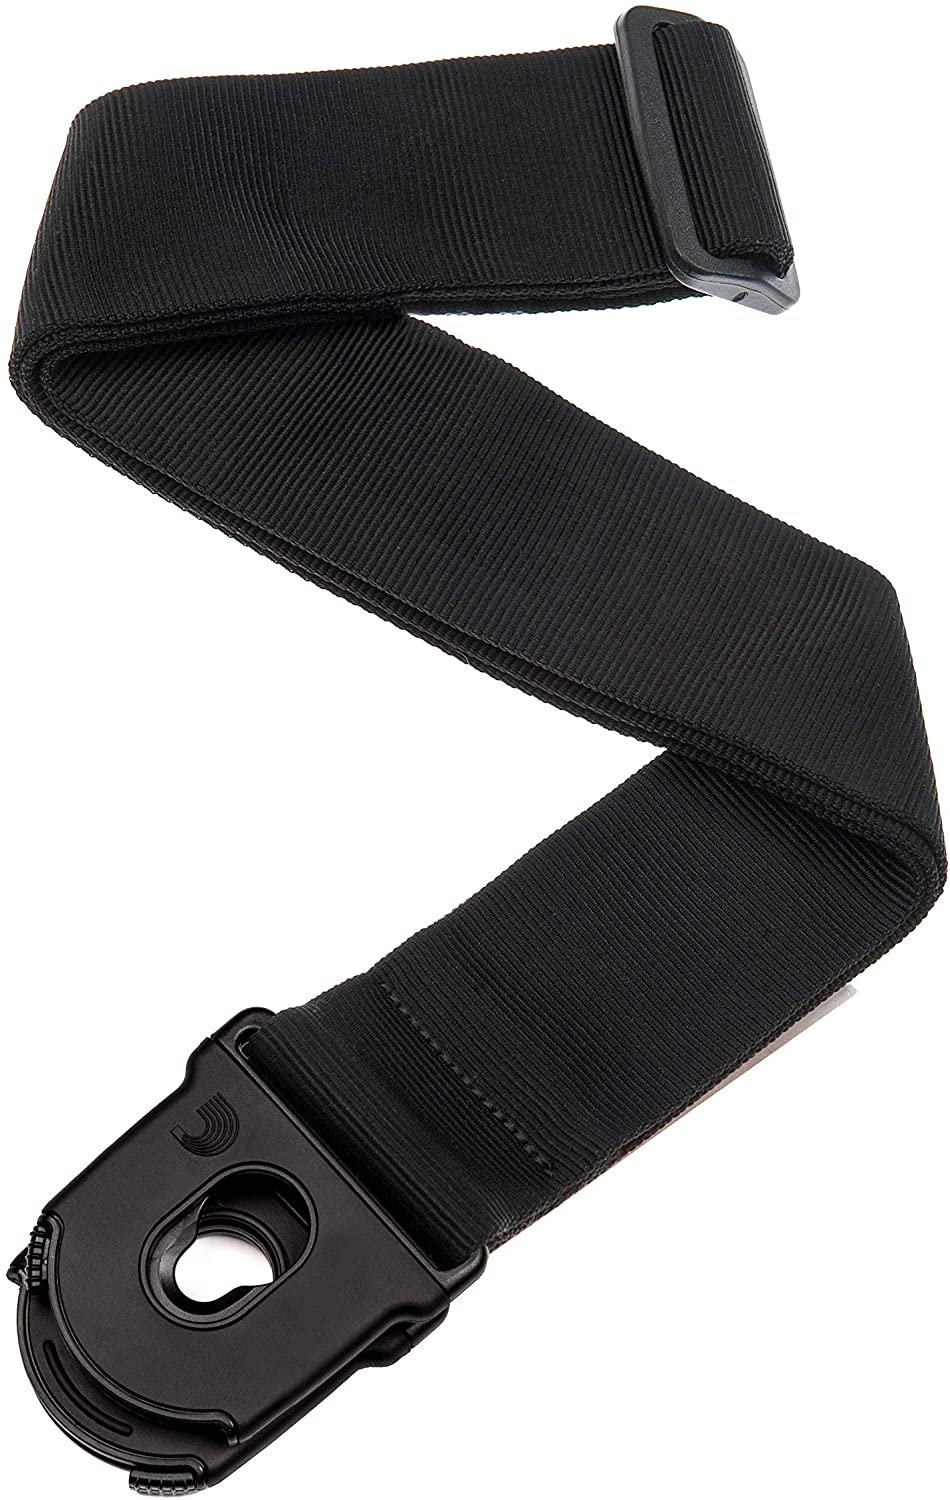 Planet Waves Planet Lock Guitar Strap, Black Nylon Black Nylon